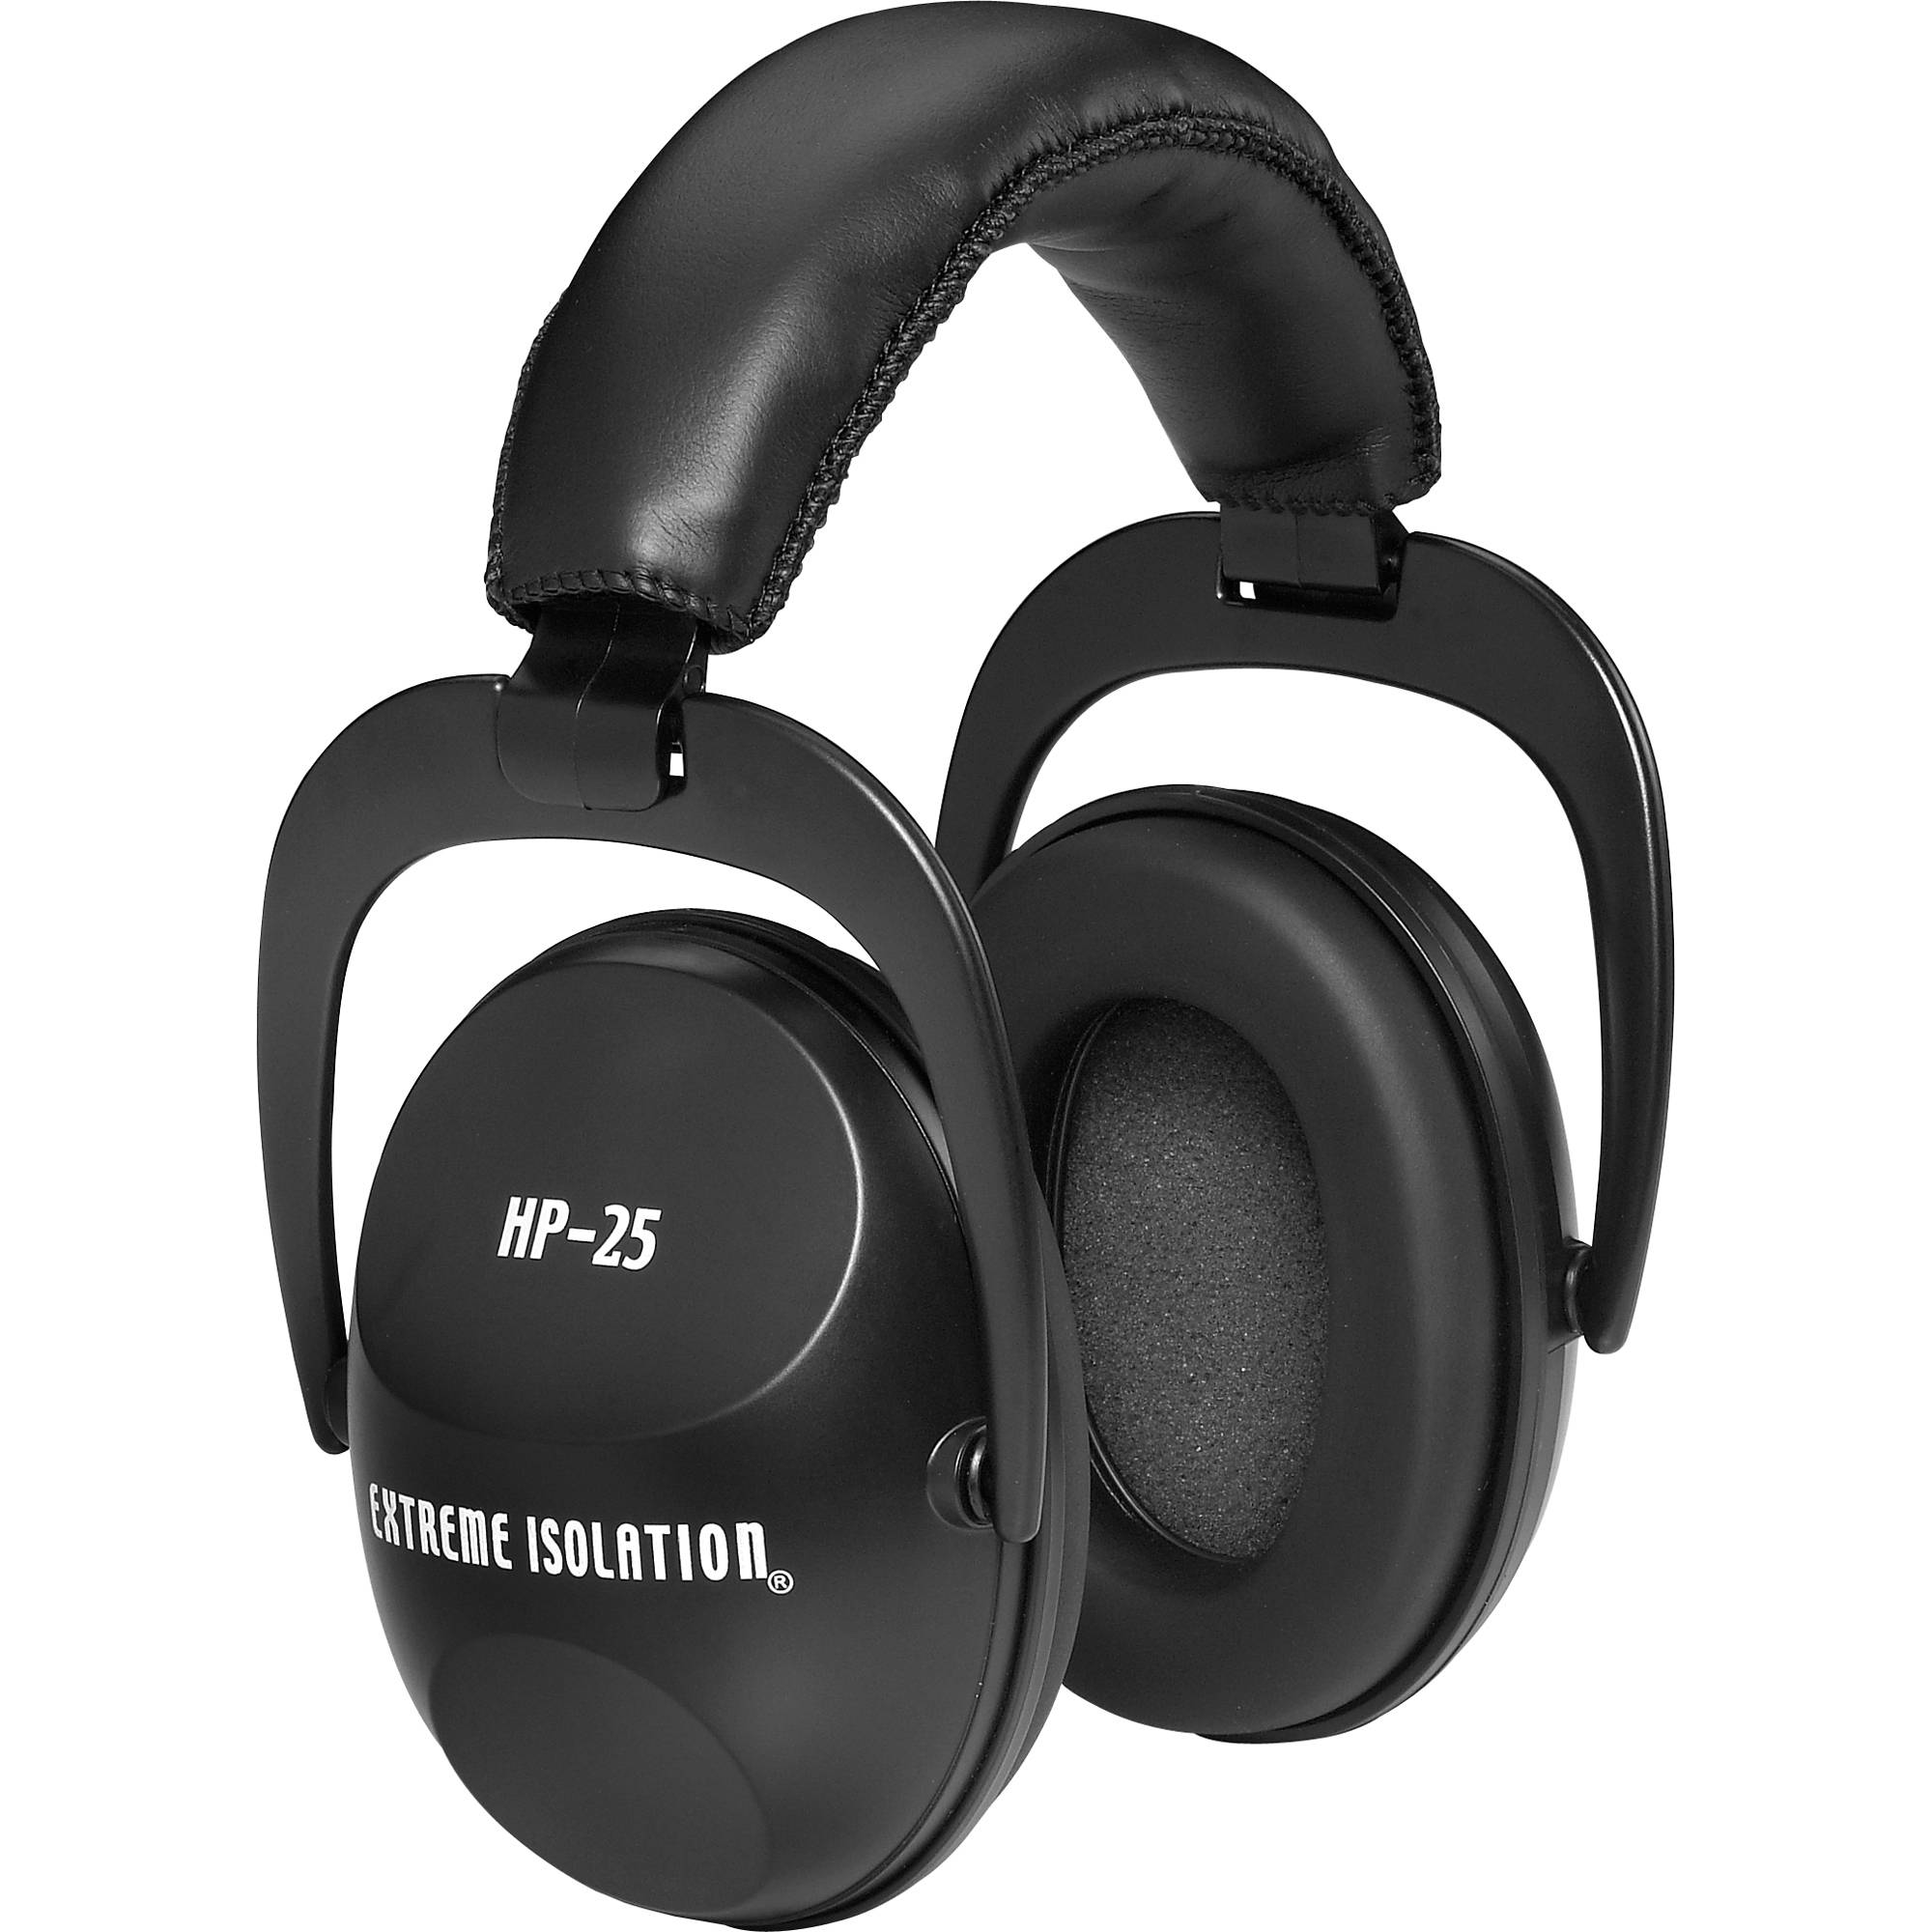 direct sound headphones hp 25 hearing protection hp 25 b h photo. Black Bedroom Furniture Sets. Home Design Ideas